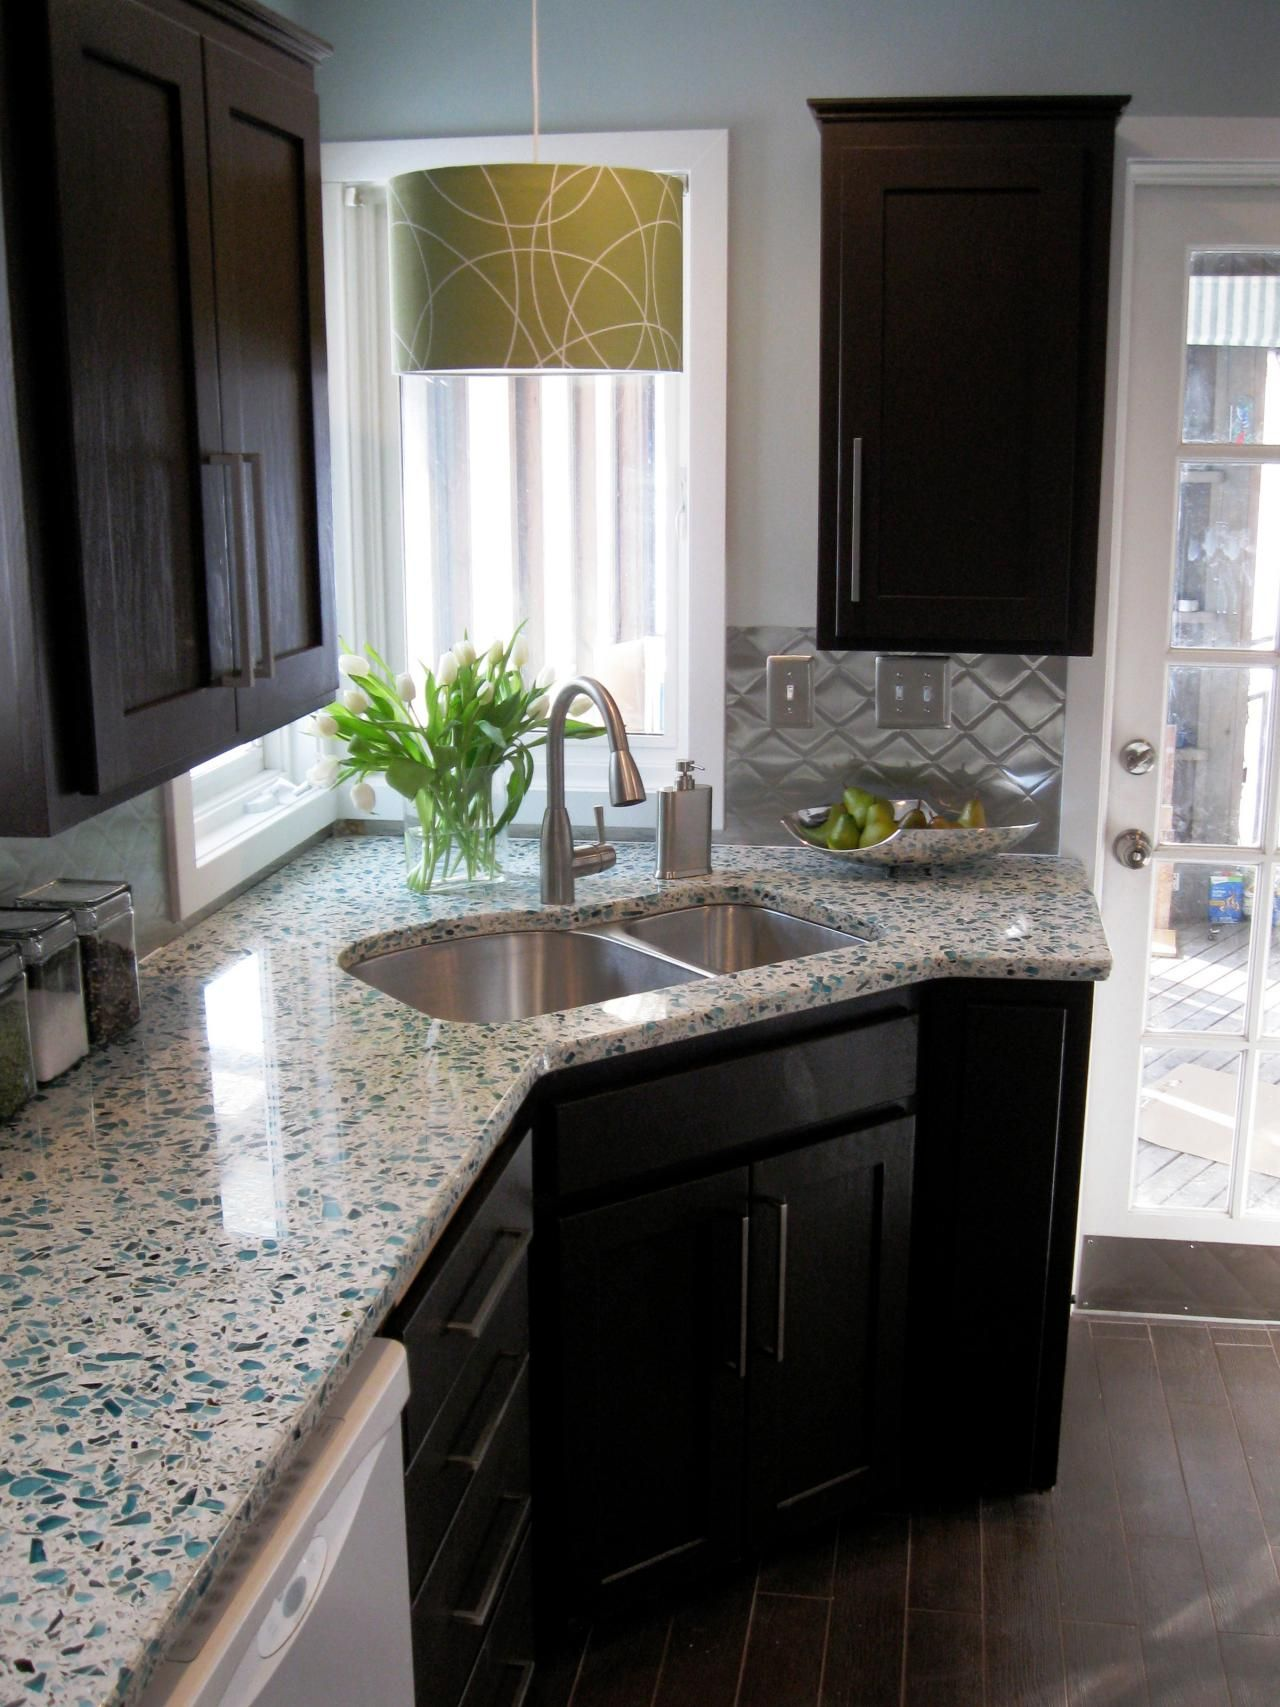 Budget Friendly Before And After Kitchen Makeovers Home Improvement Diy Network I Like